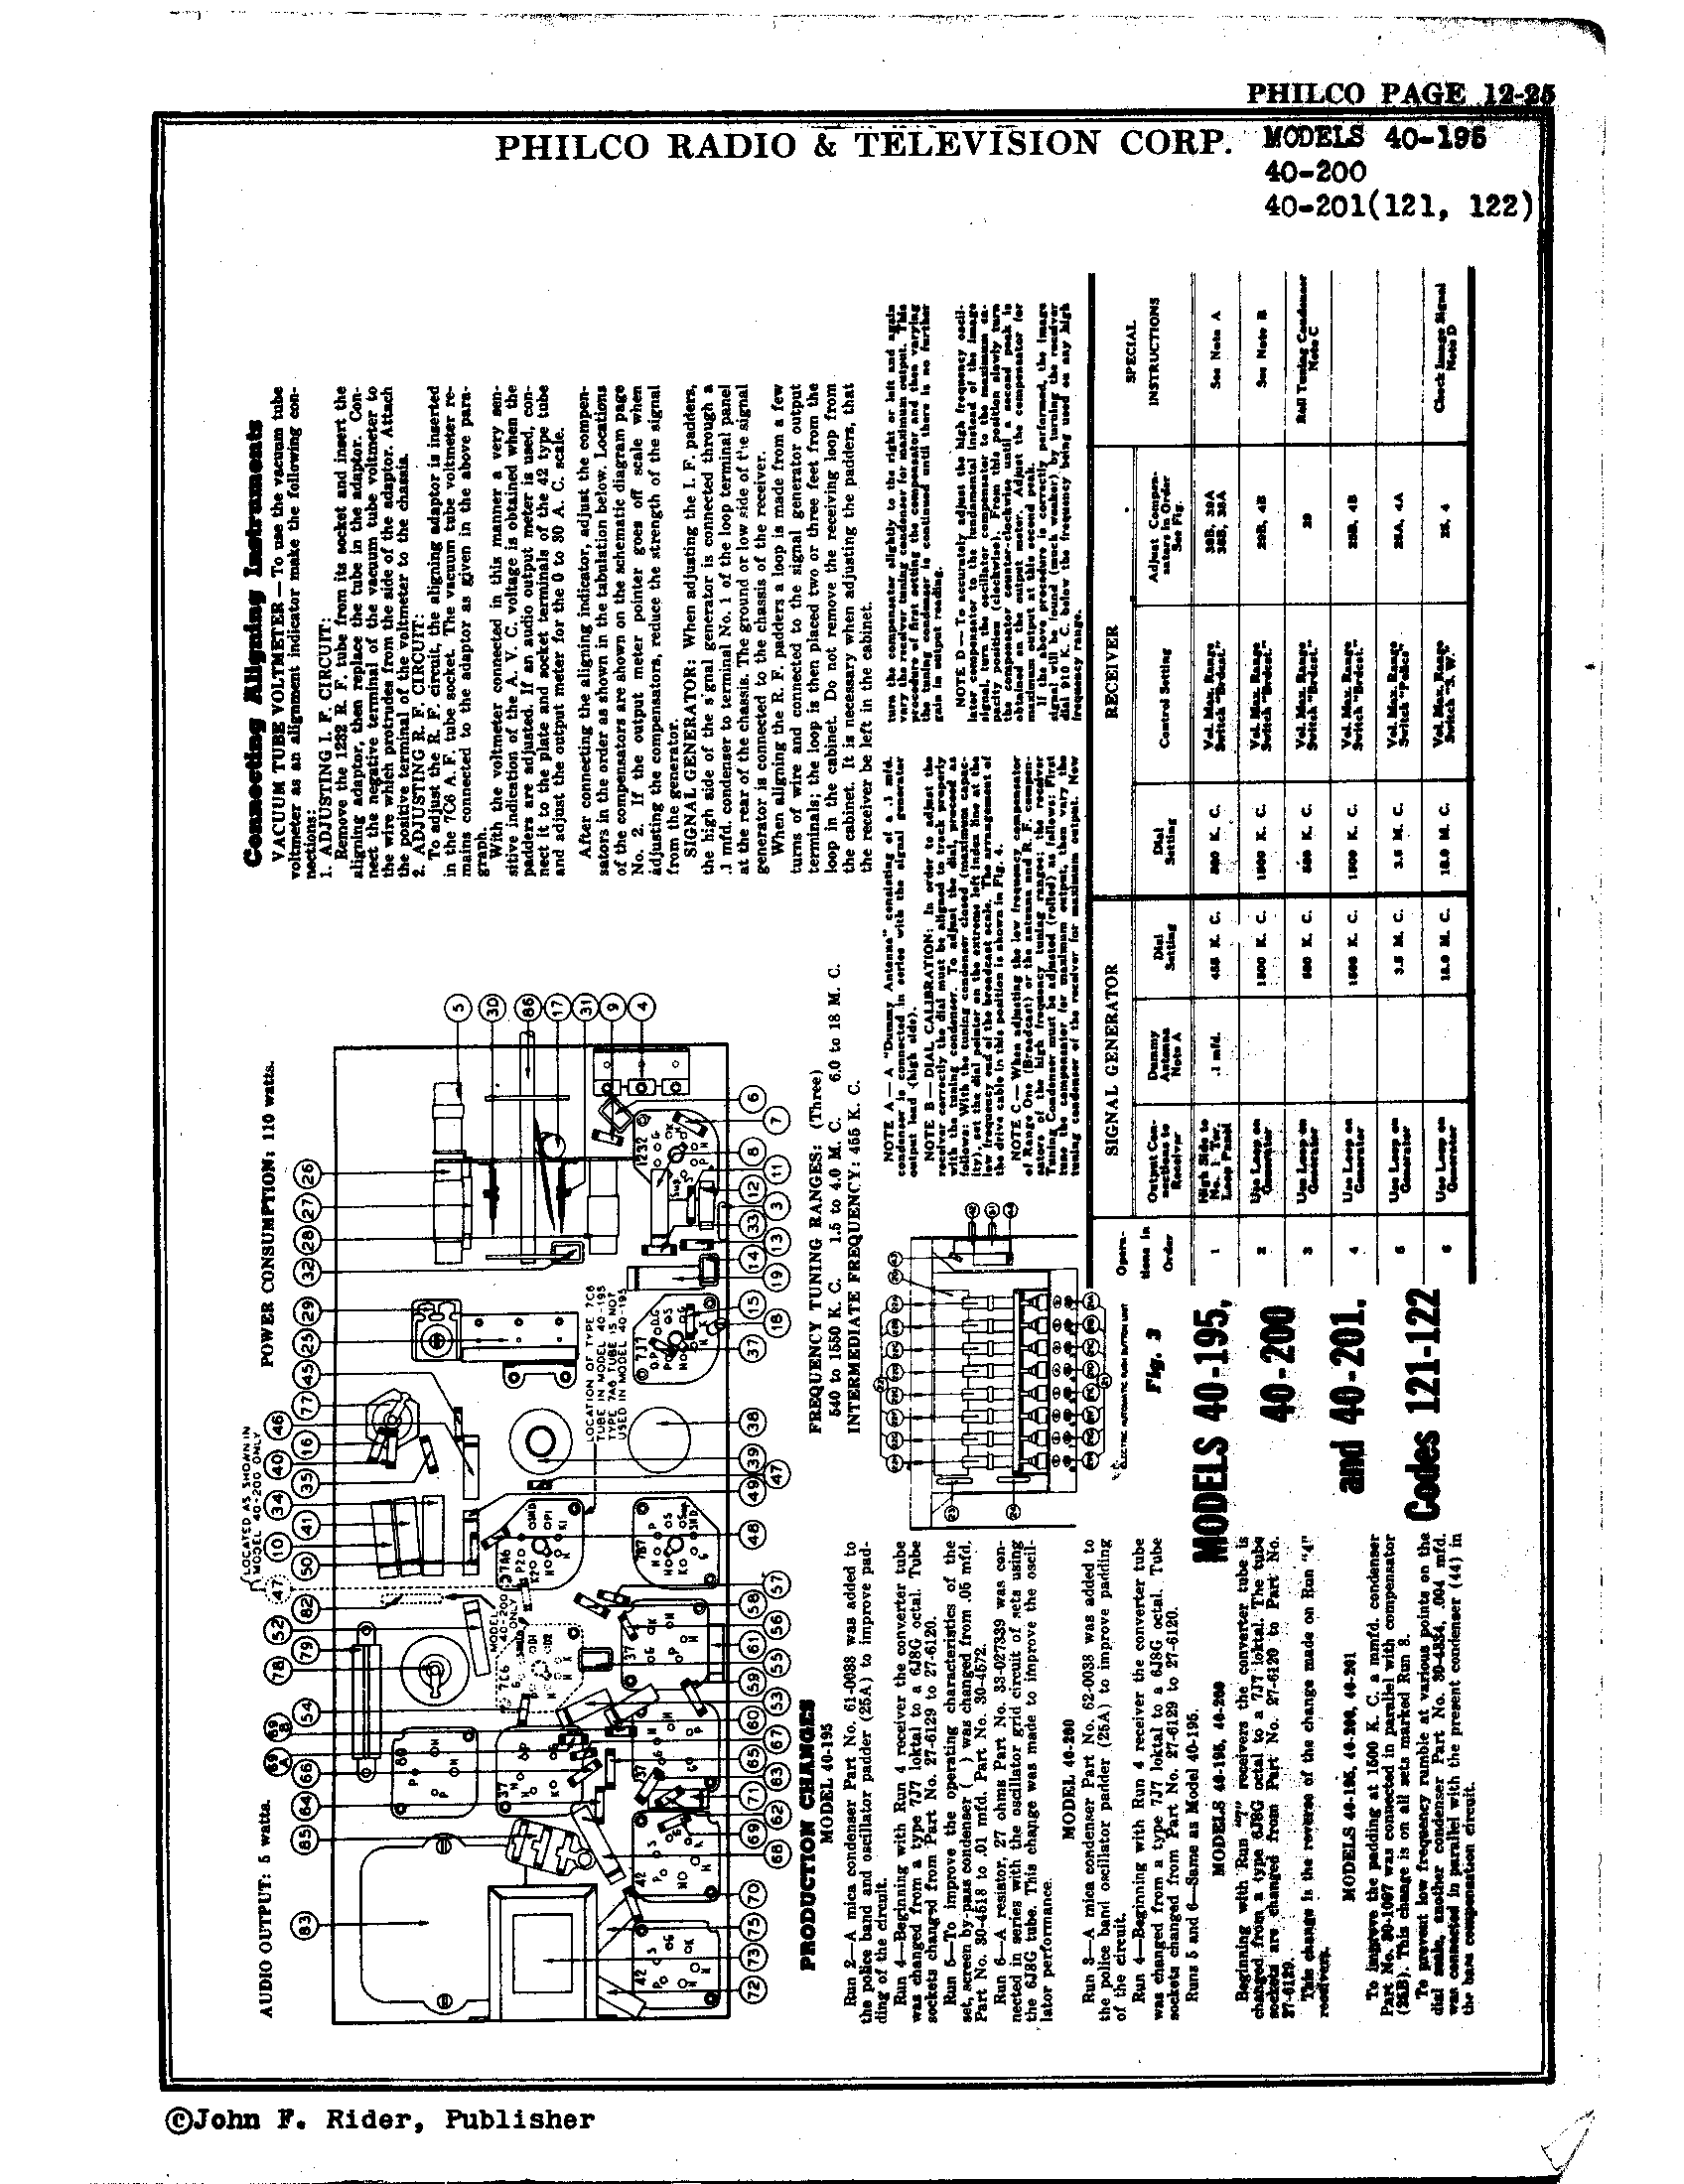 Philco Radio Television Corp 40 201121122 Antique Electronic And I Might Change The Circuit Schematics Last Updated 6 4 12 Page 2 11054 Kb Rider Manual Volume